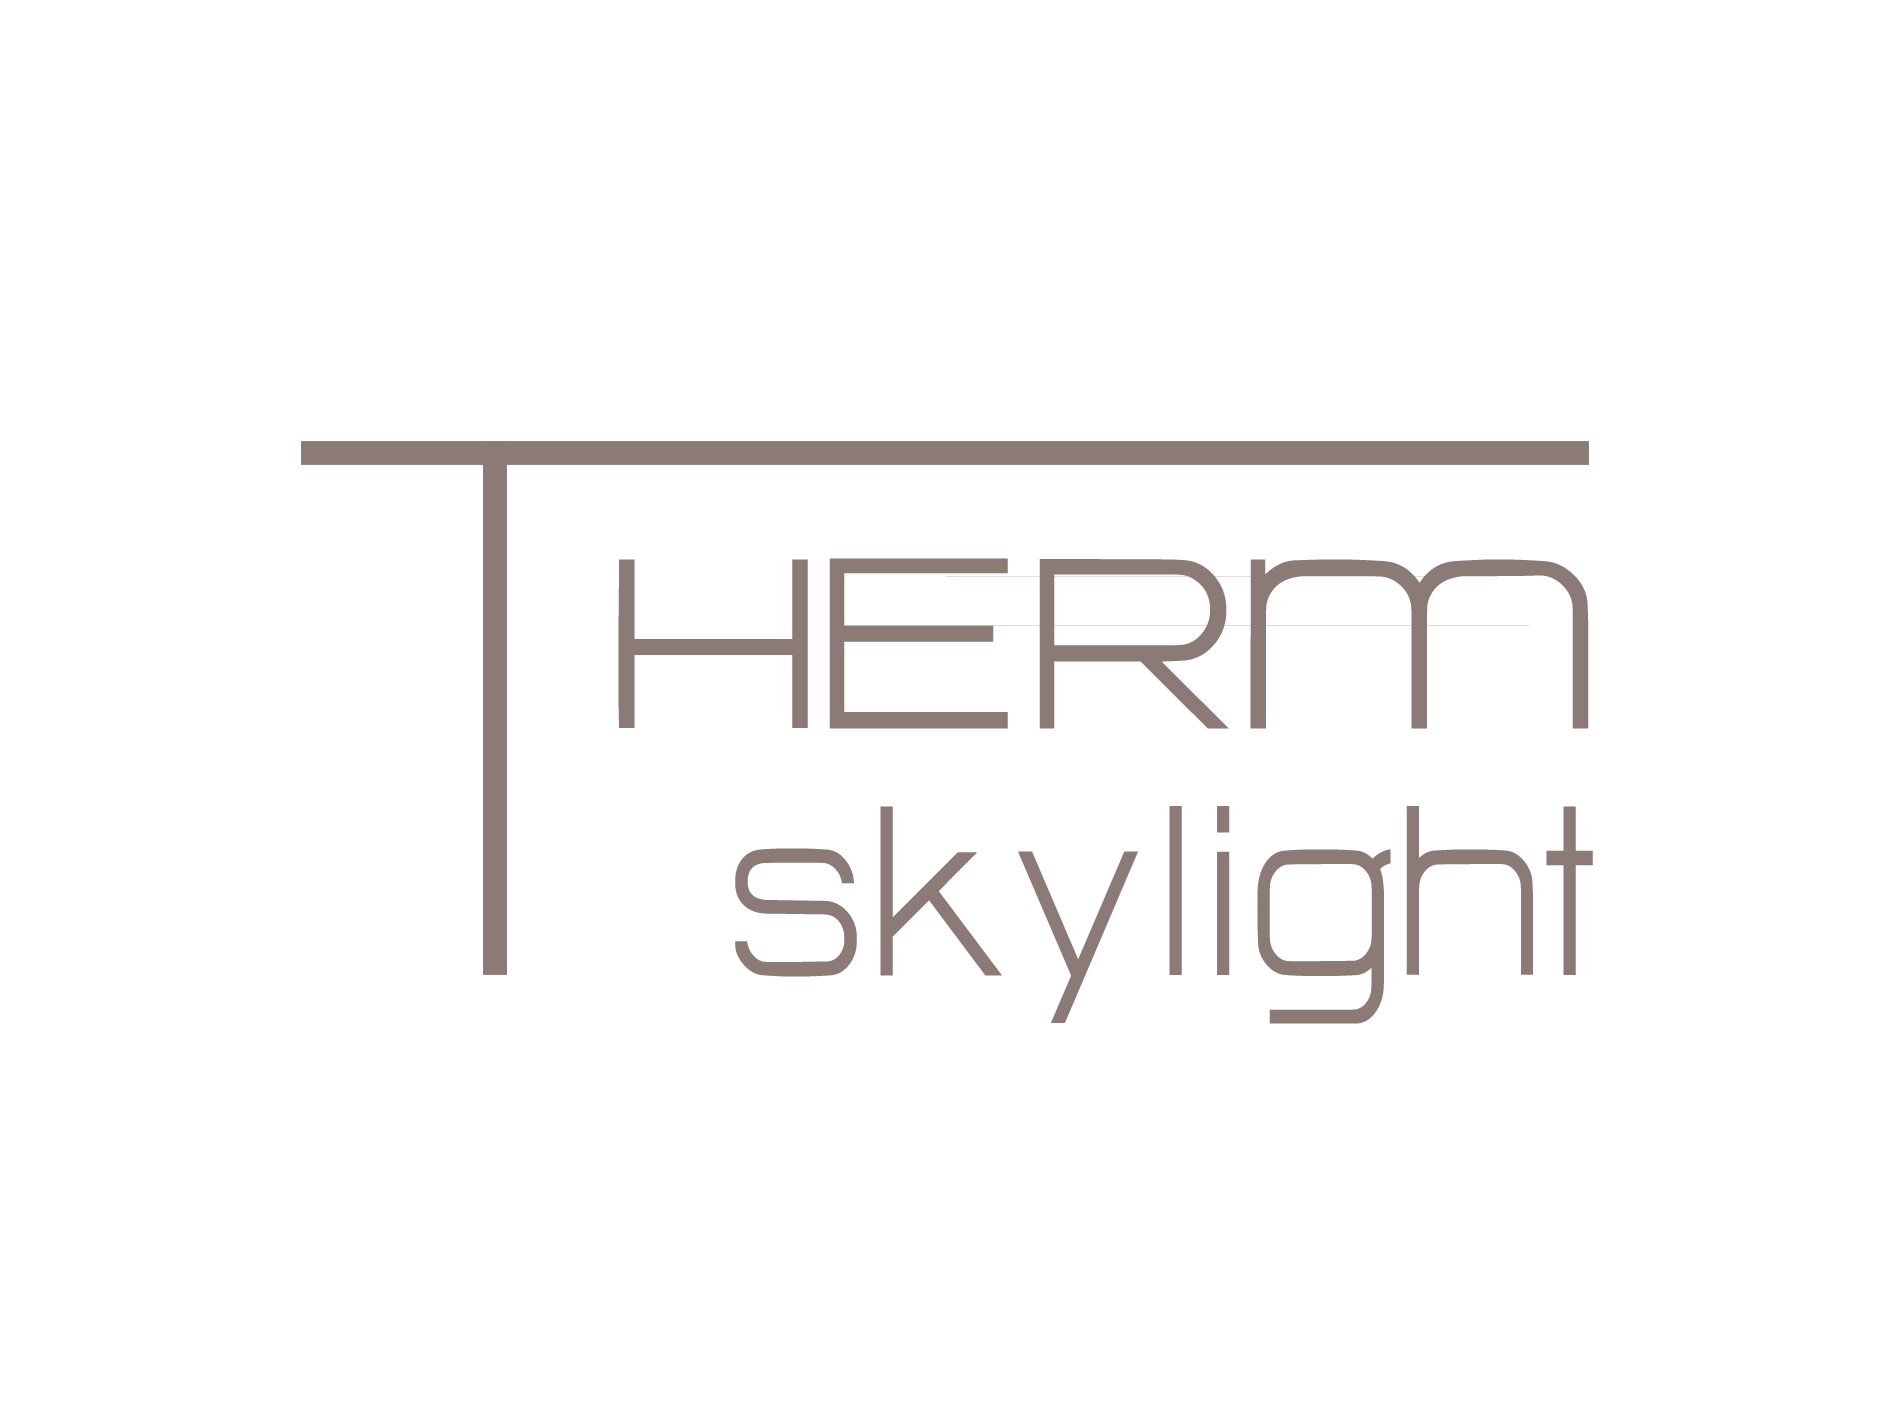 ThermSkylight